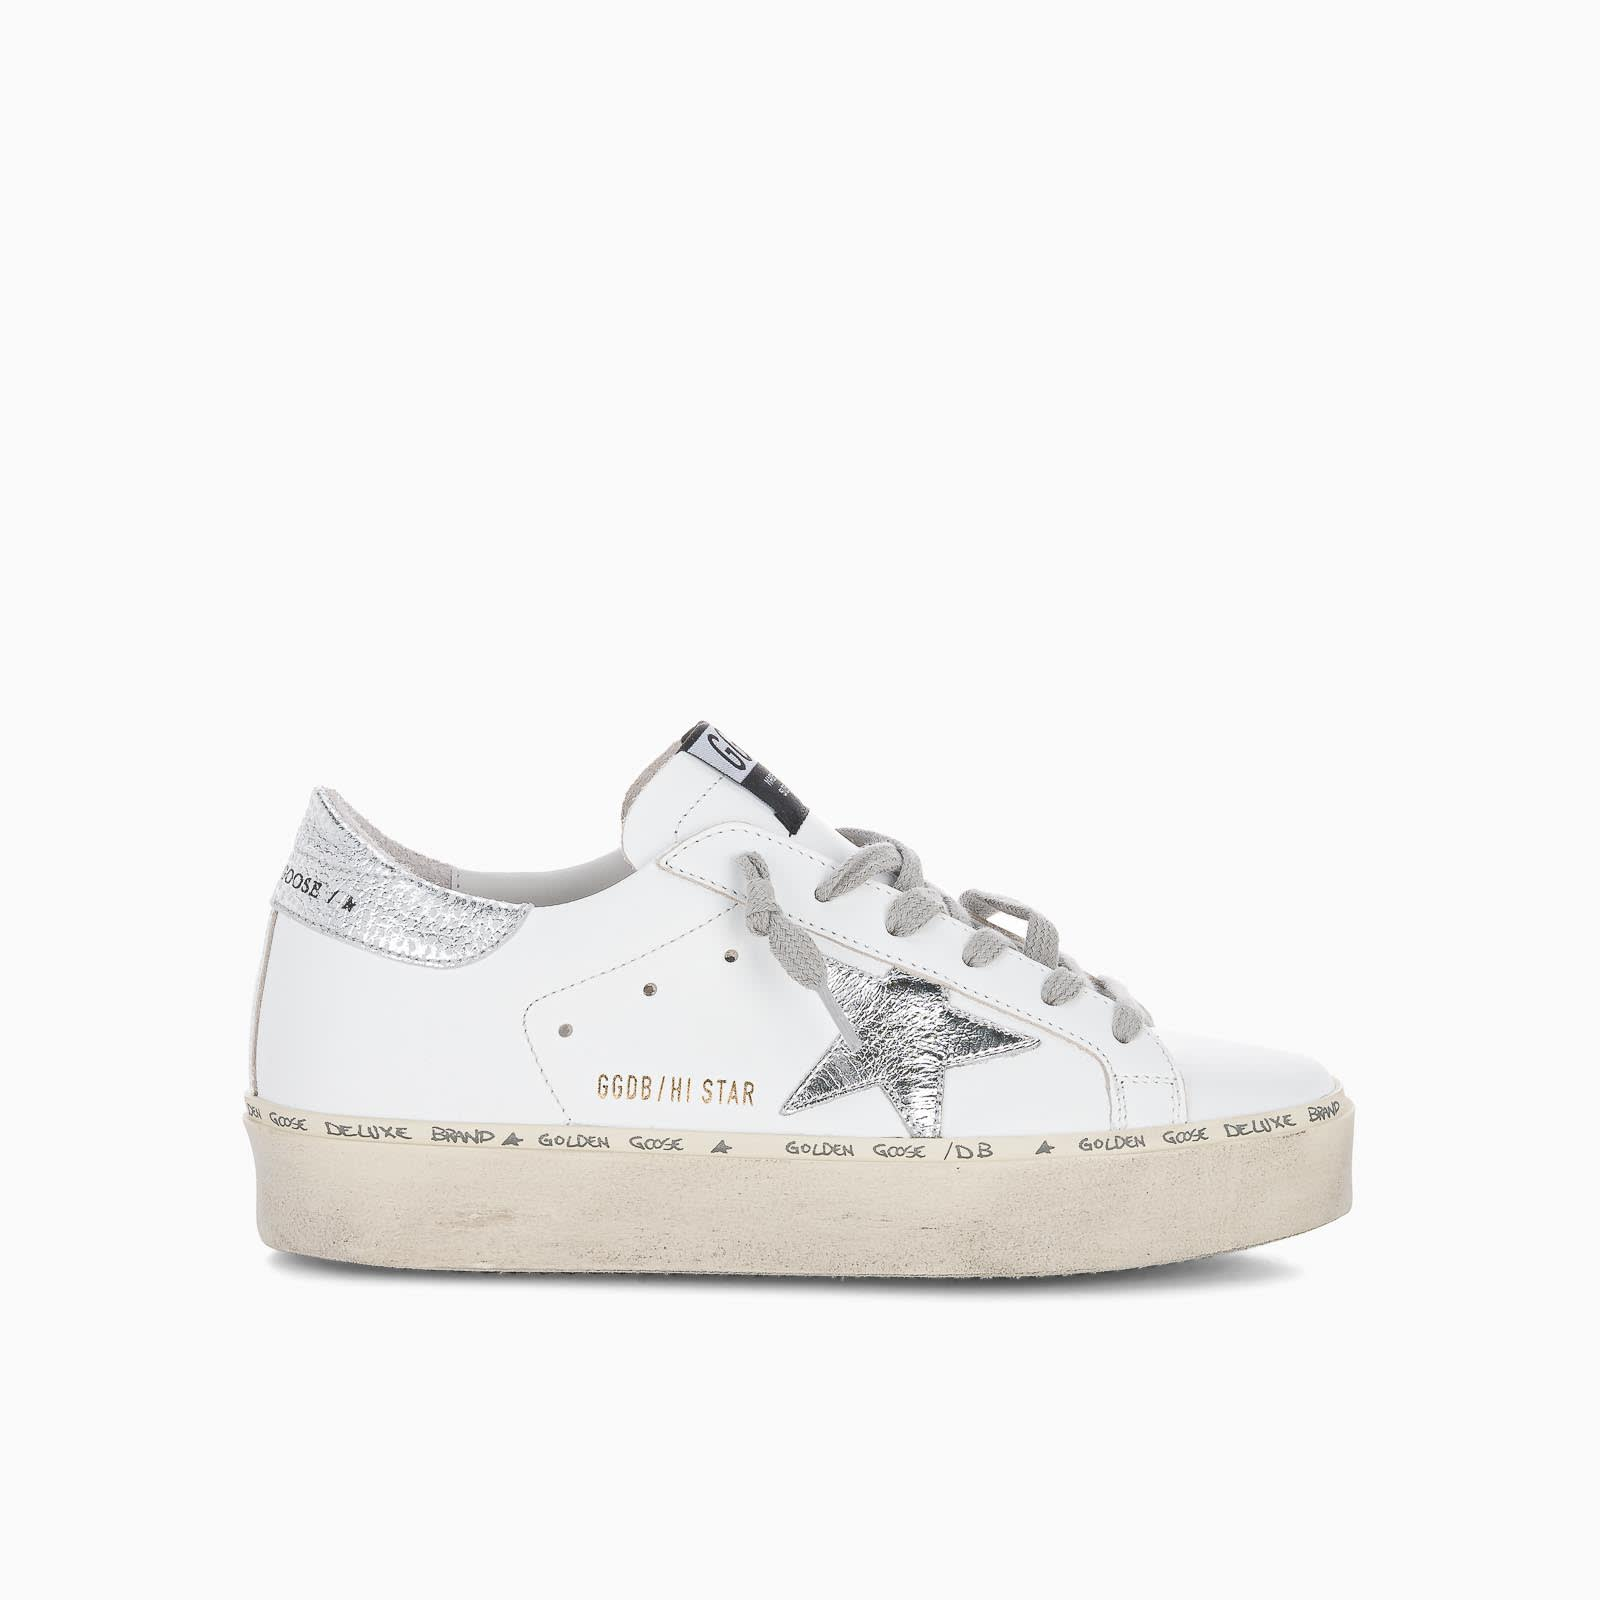 Golden Goose Hi Star Sneakers With Silver Star And Heel Tab